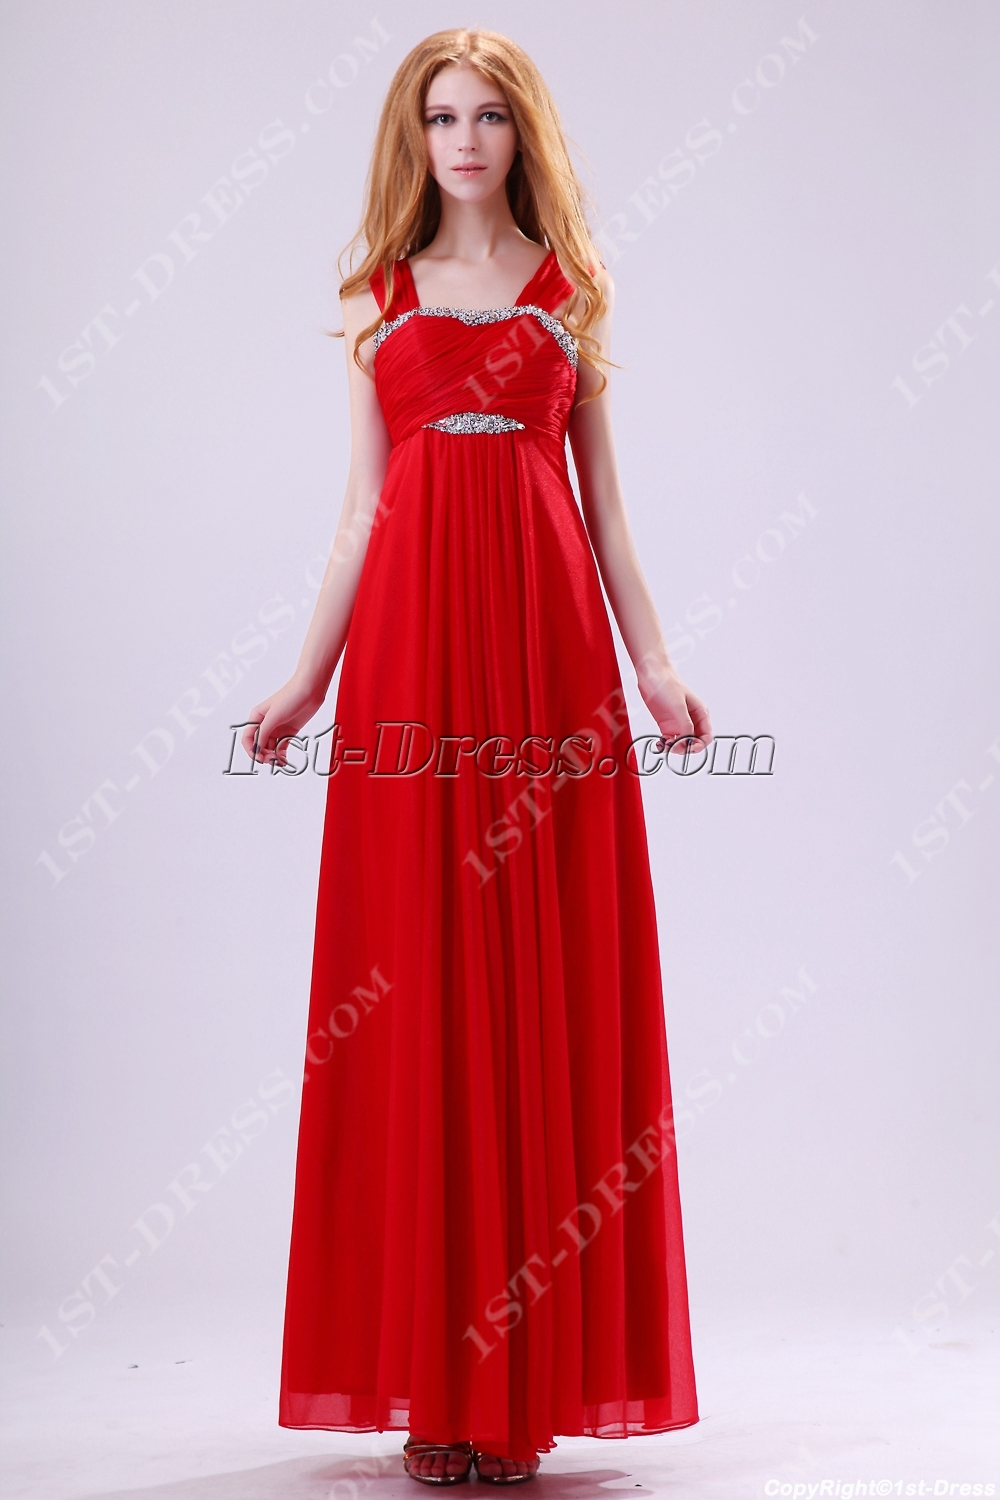 images/201311/big/Red-Straps-Plus-Size-Graduation-Dresses-for-8th-Grade-Girls-3537-b-1-1384446862.jpg